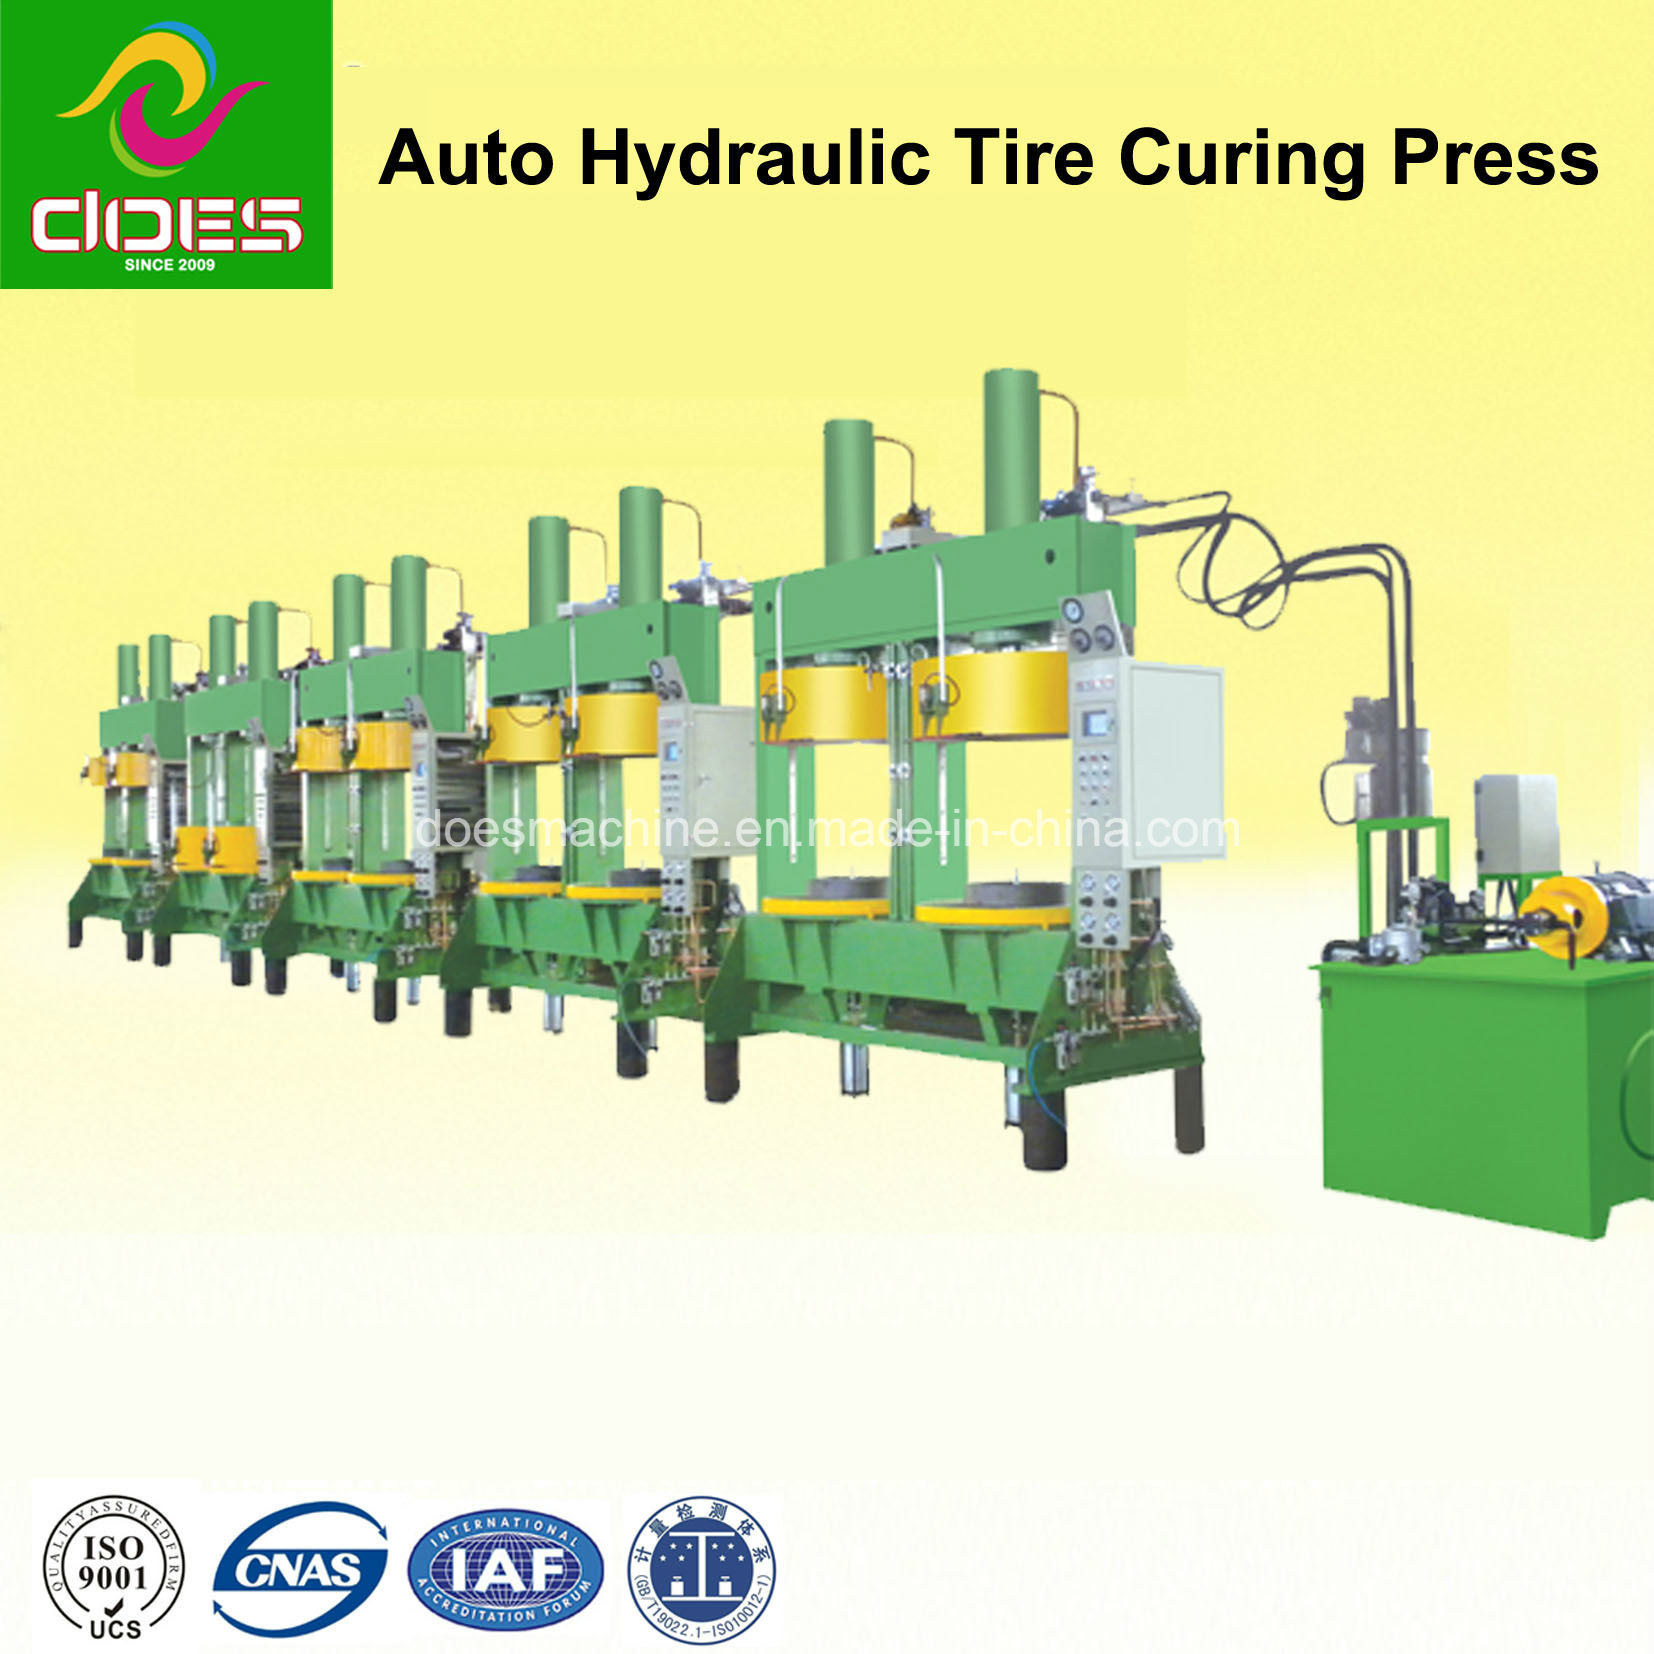 Dual-Mold Rubber Tire Curing Press Machine with Automatic Hydraulic